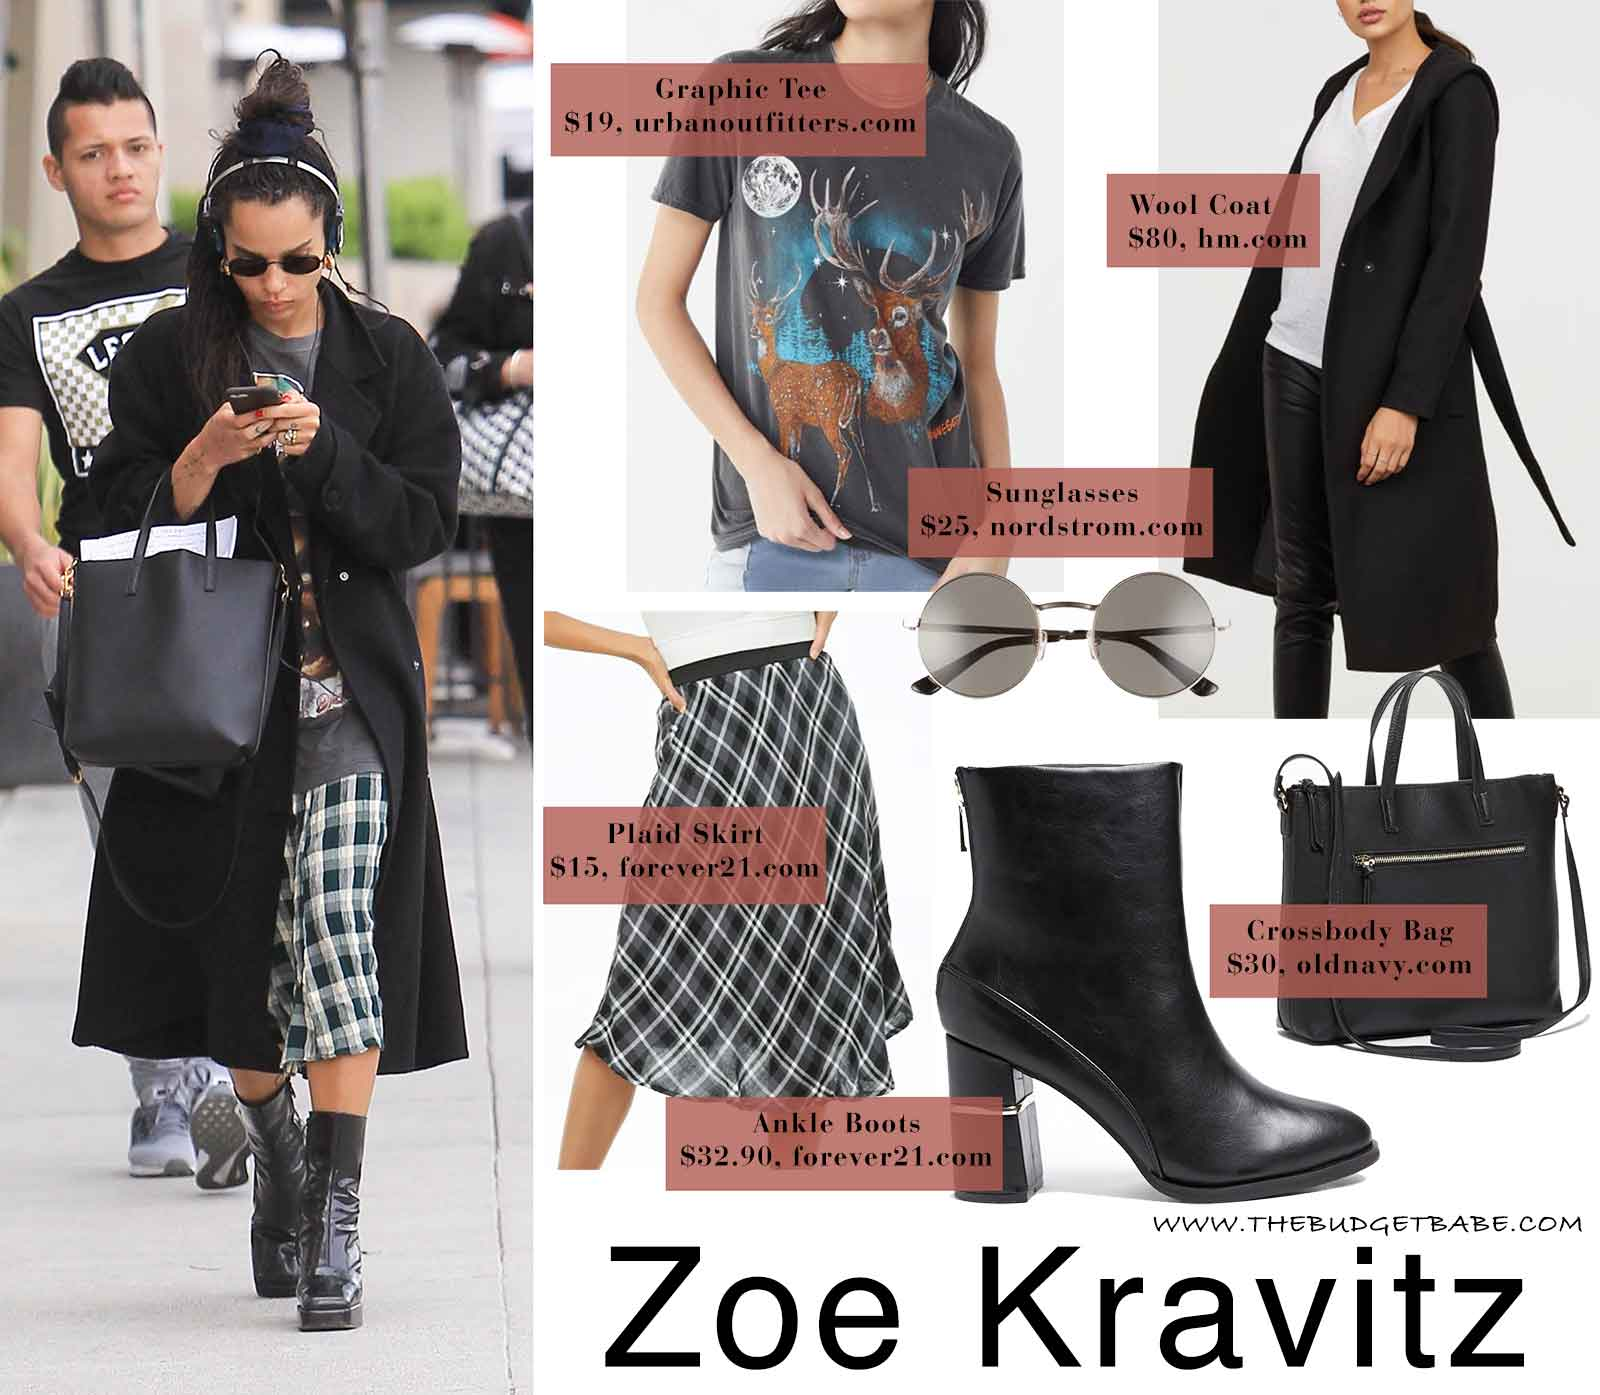 Zoe Kravitz in a plaid skirt and platform ankle boots